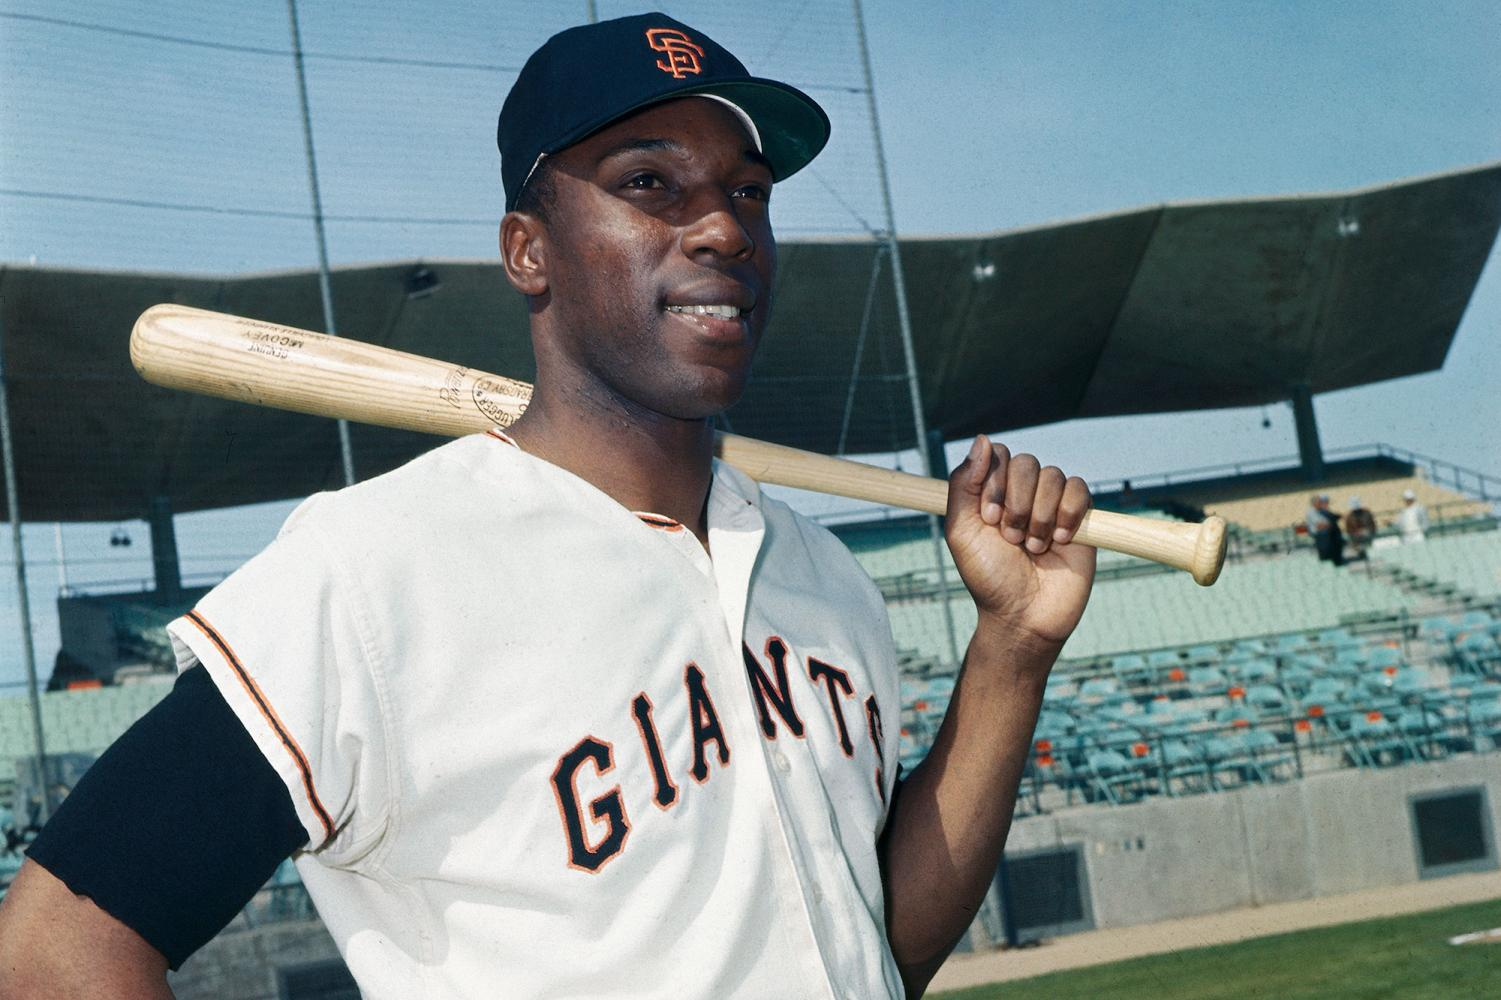 Willie McCovey was a Giants great and Hall of Famer.